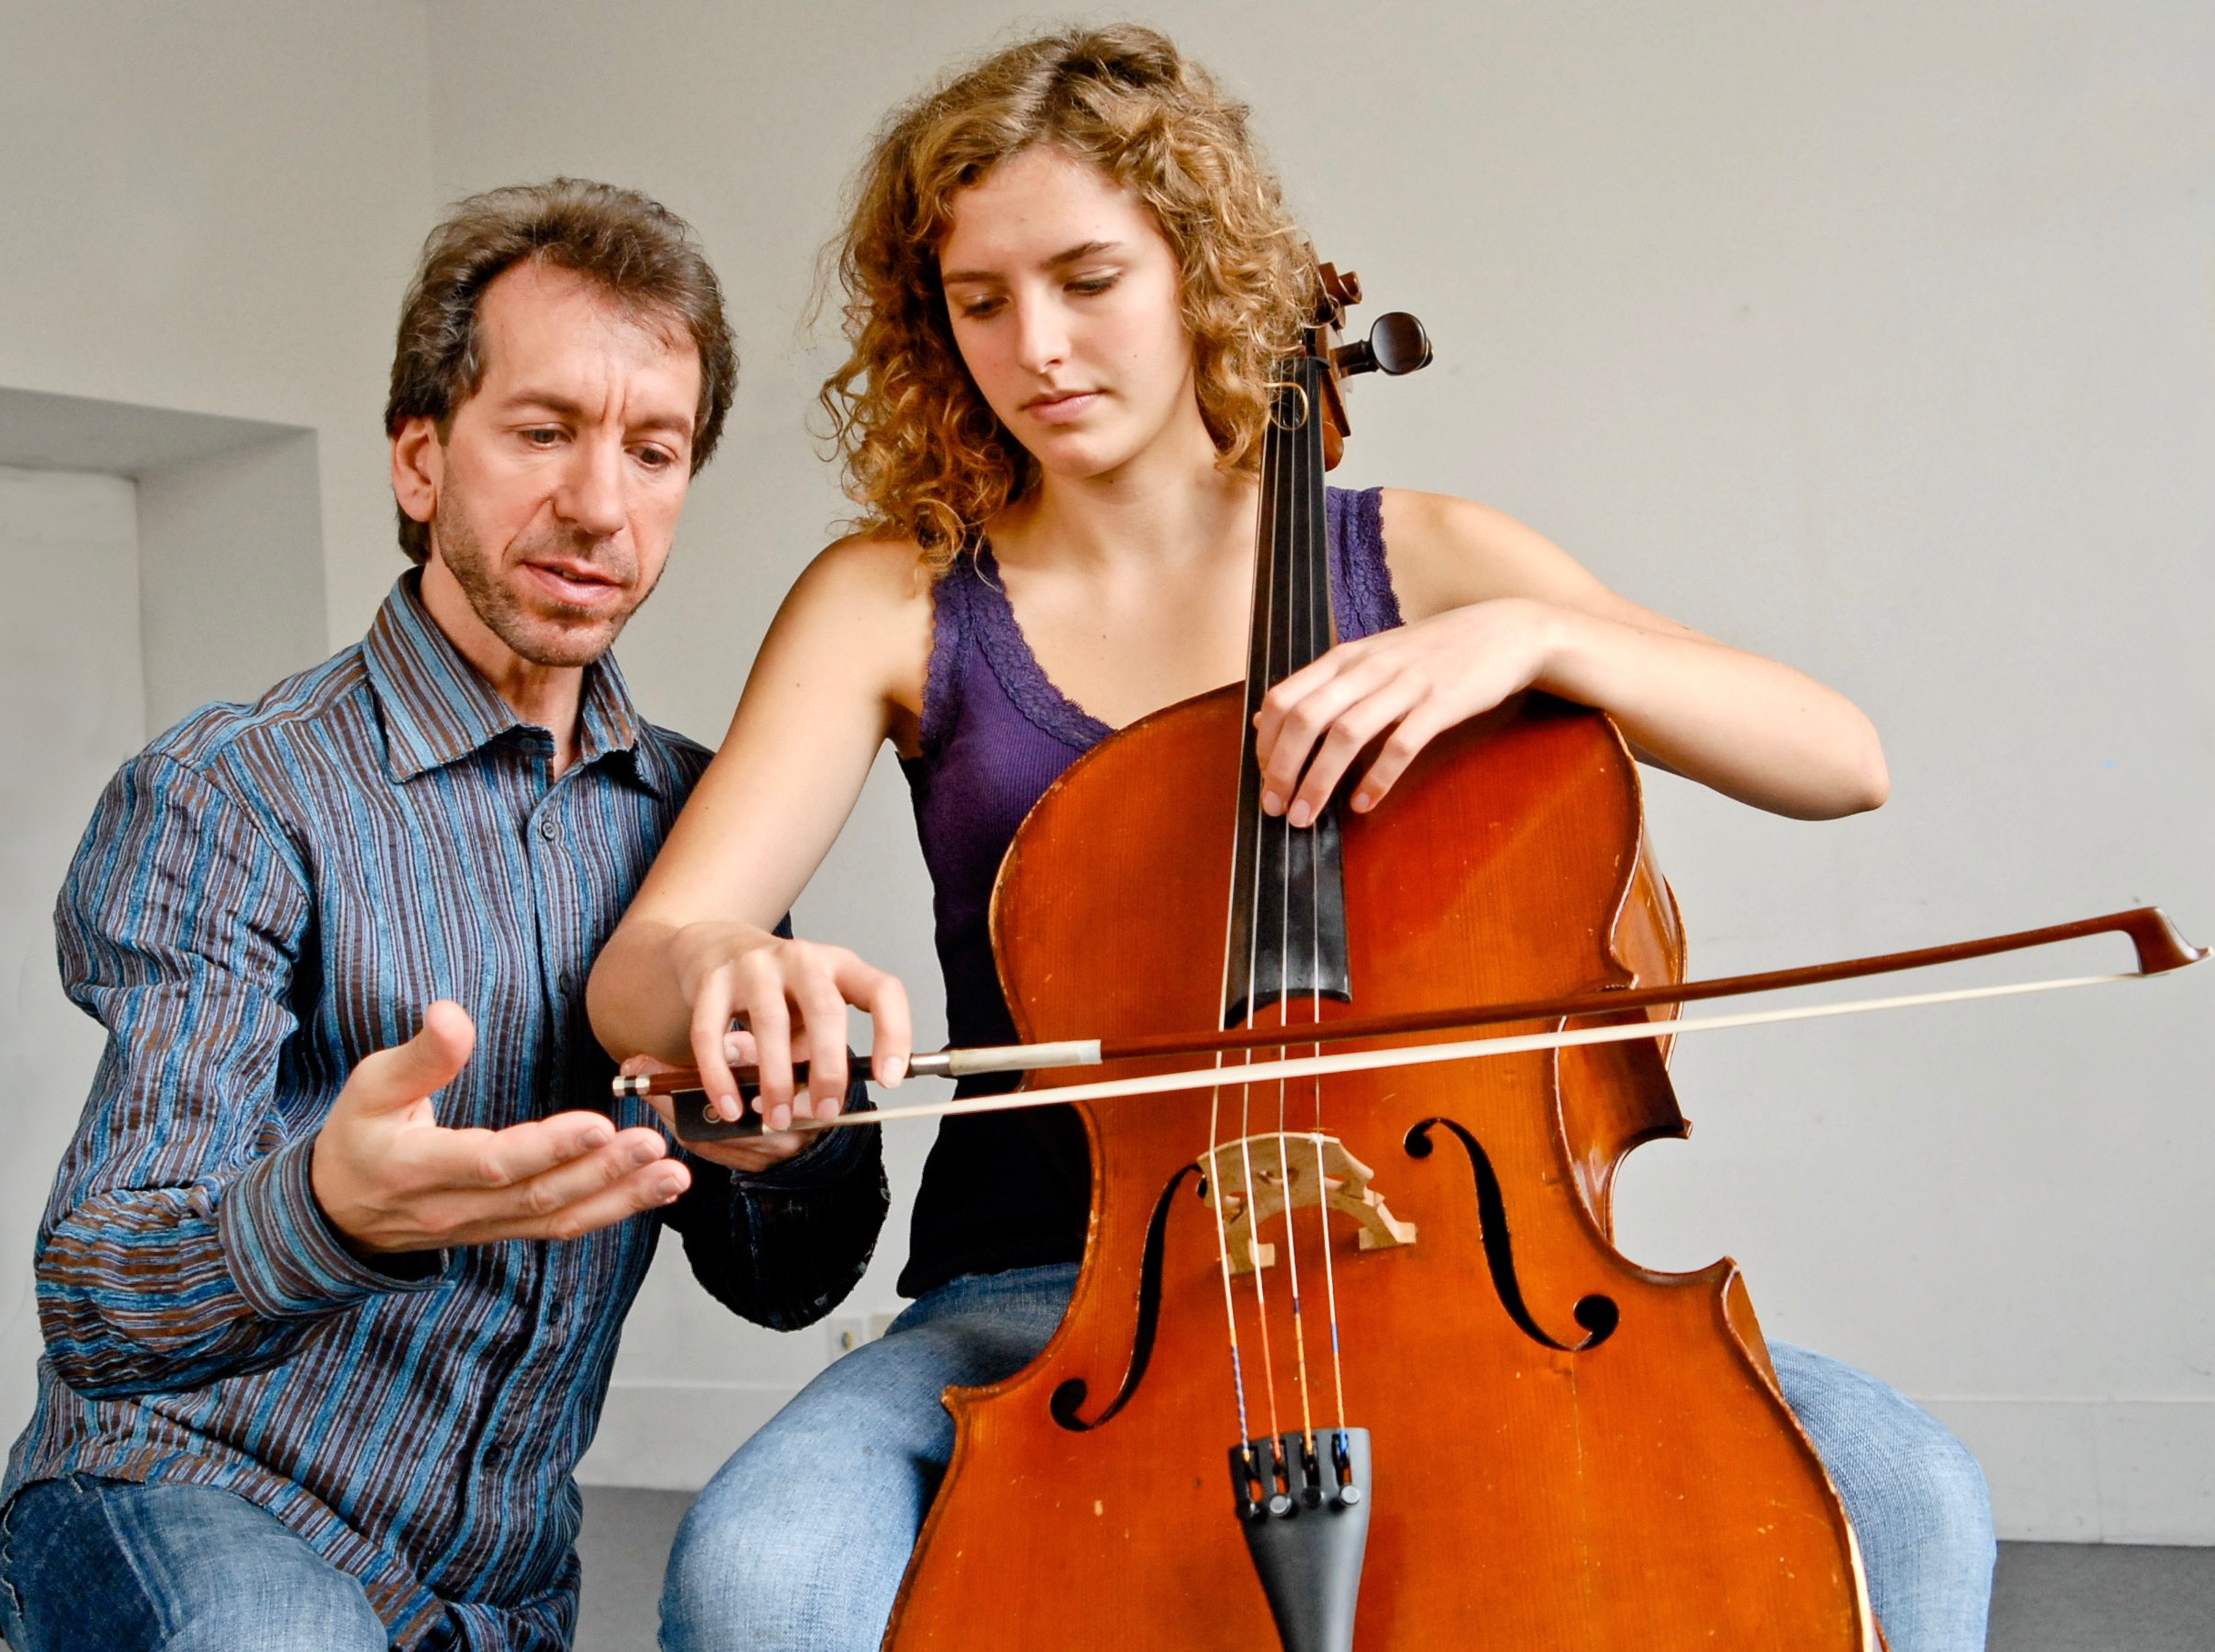 Cello Clinic - A unique personal service giving musicians access to in-depth, confidential and specialised help from one of the world's leading soloists.